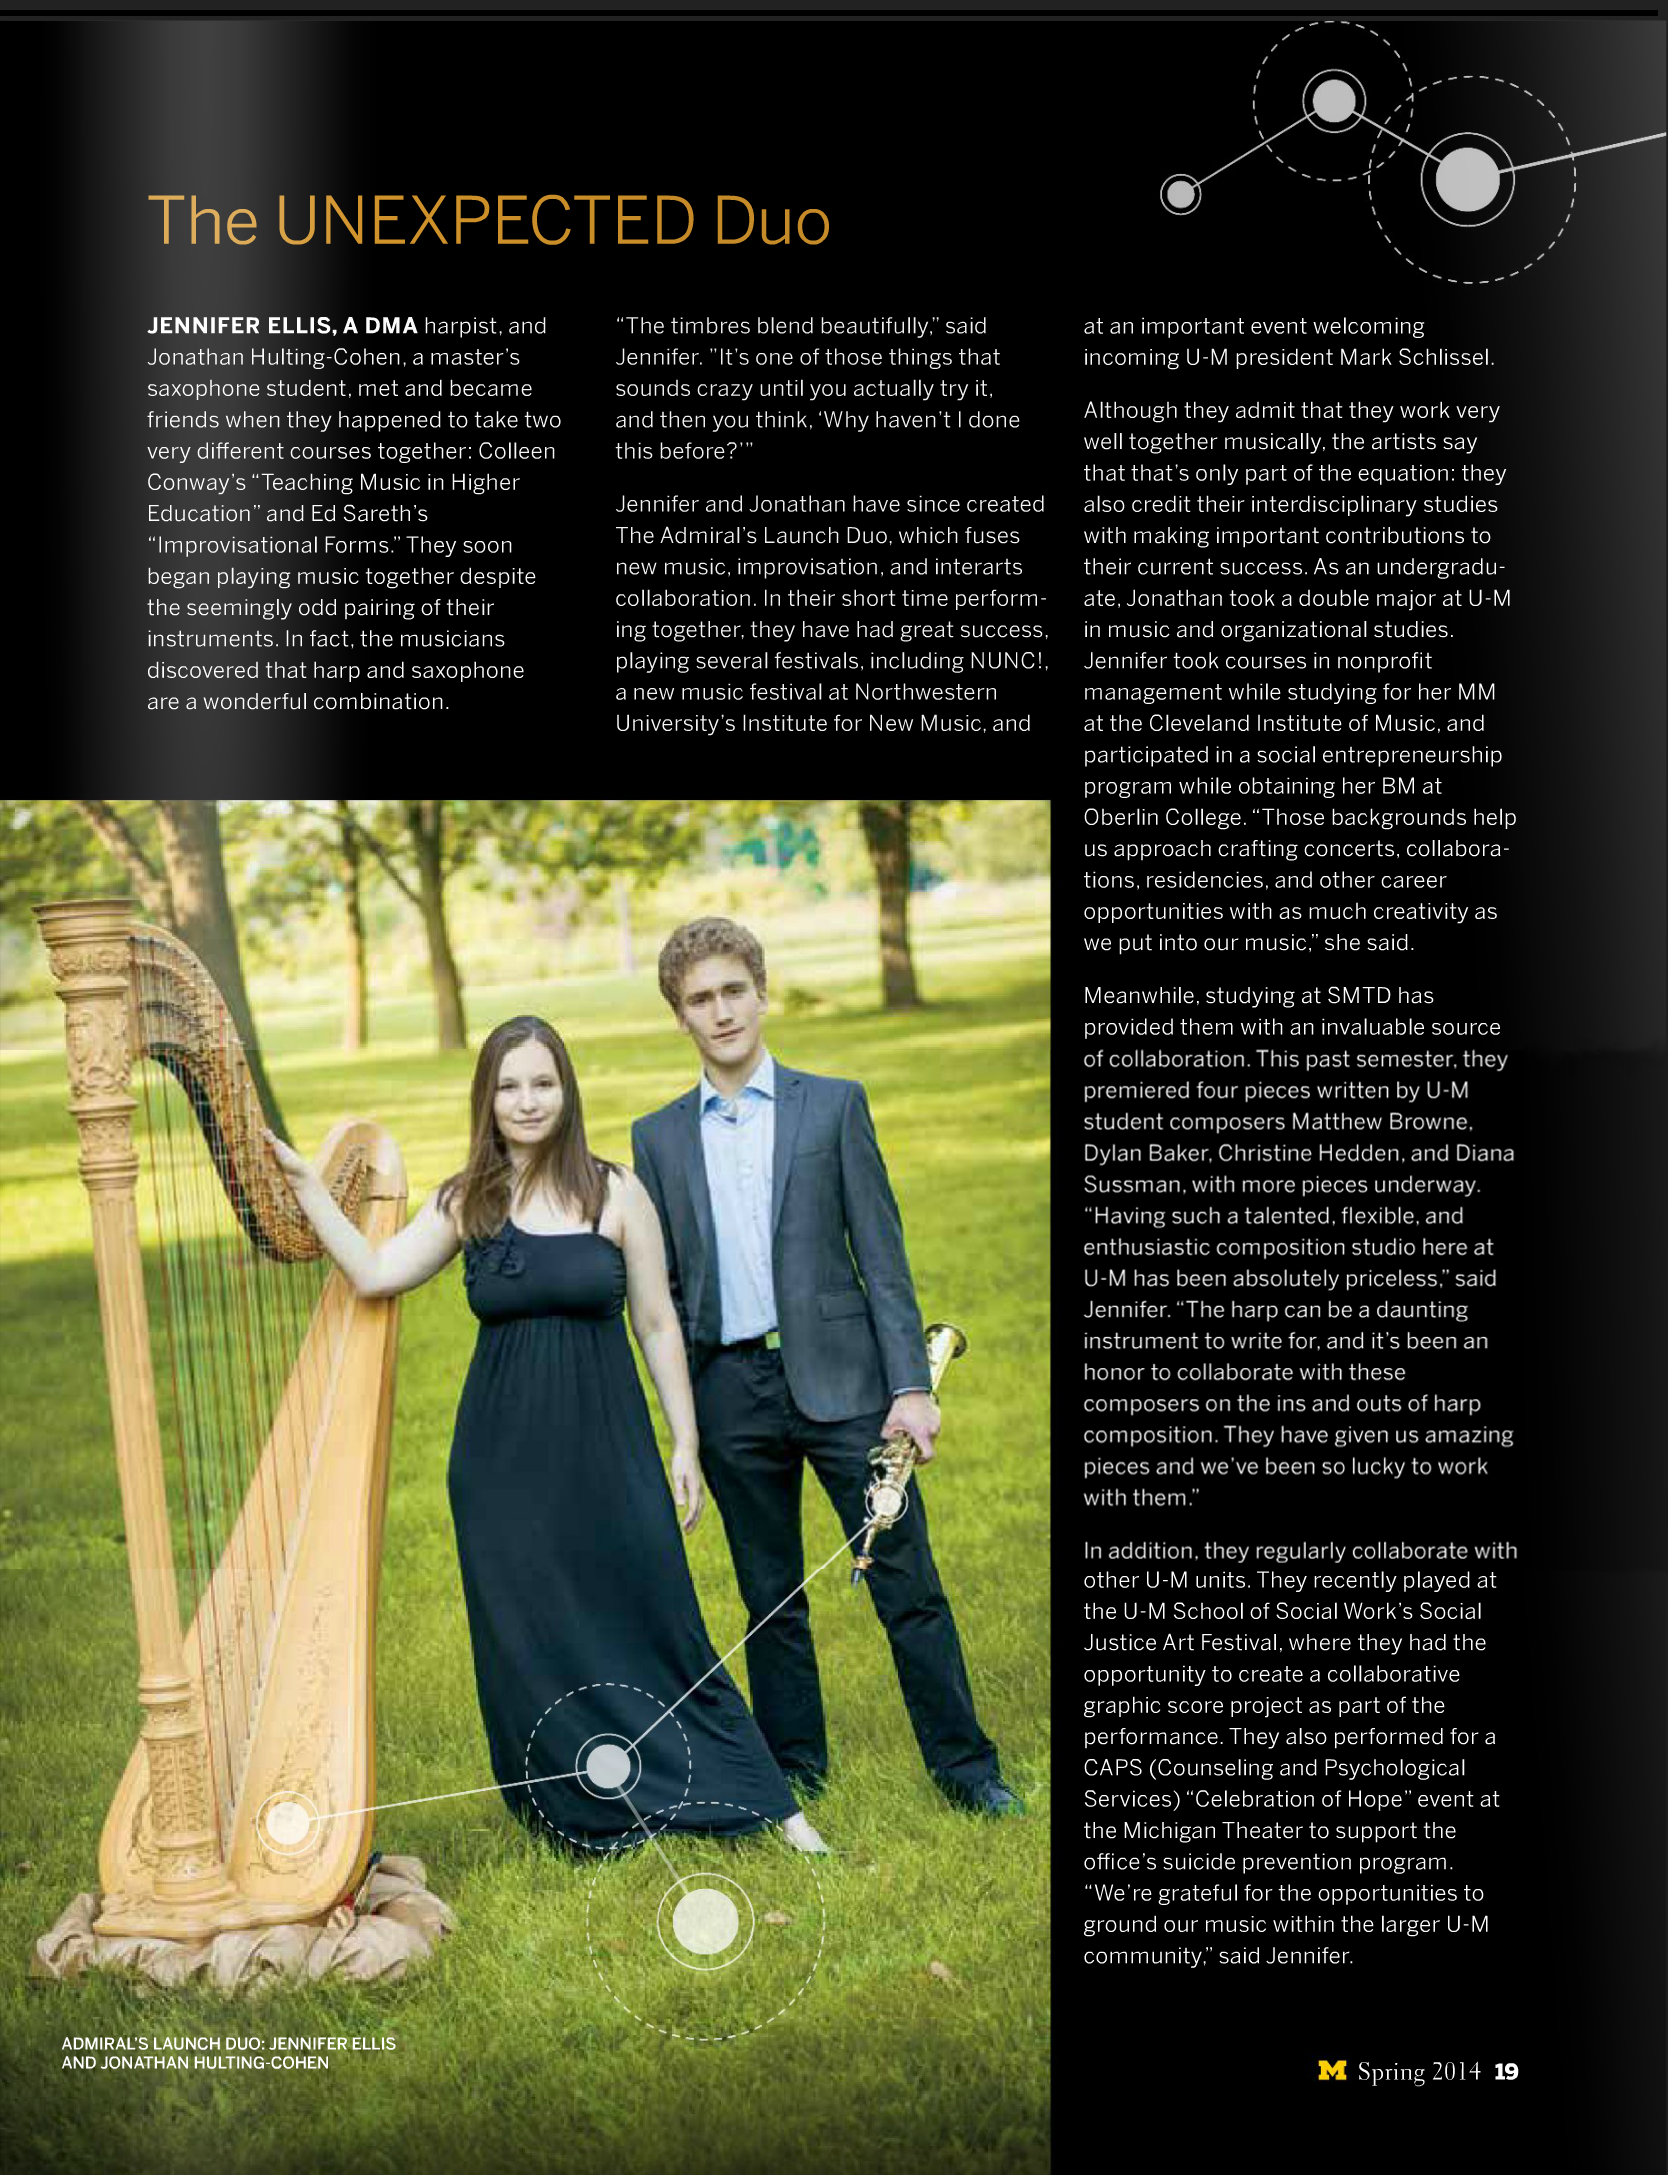 Michigan Muse Summer 2014 Admiral Launch Duo Profile